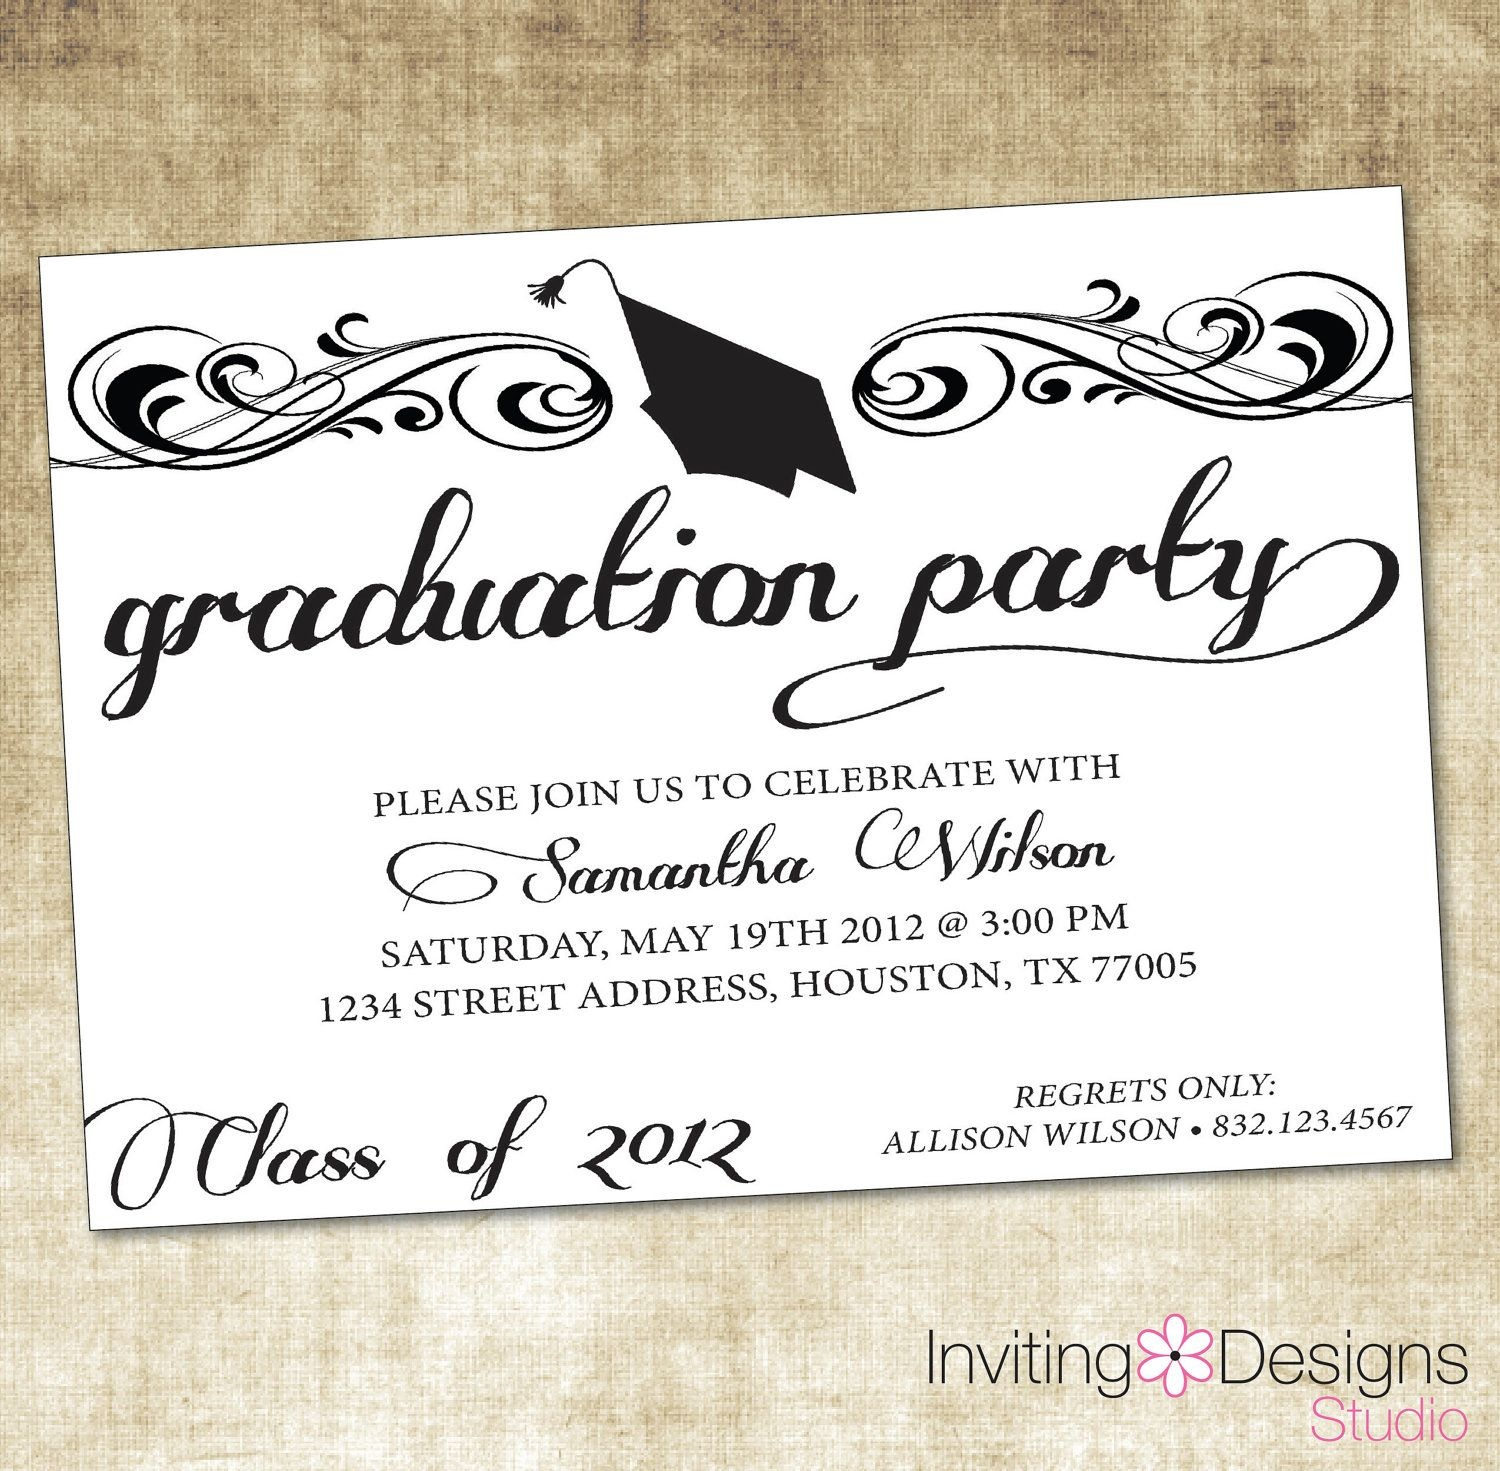 Image Result For Graduation Party Invitation Wording Ideas | Zach - Free Printable Graduation Party Invitations 2014